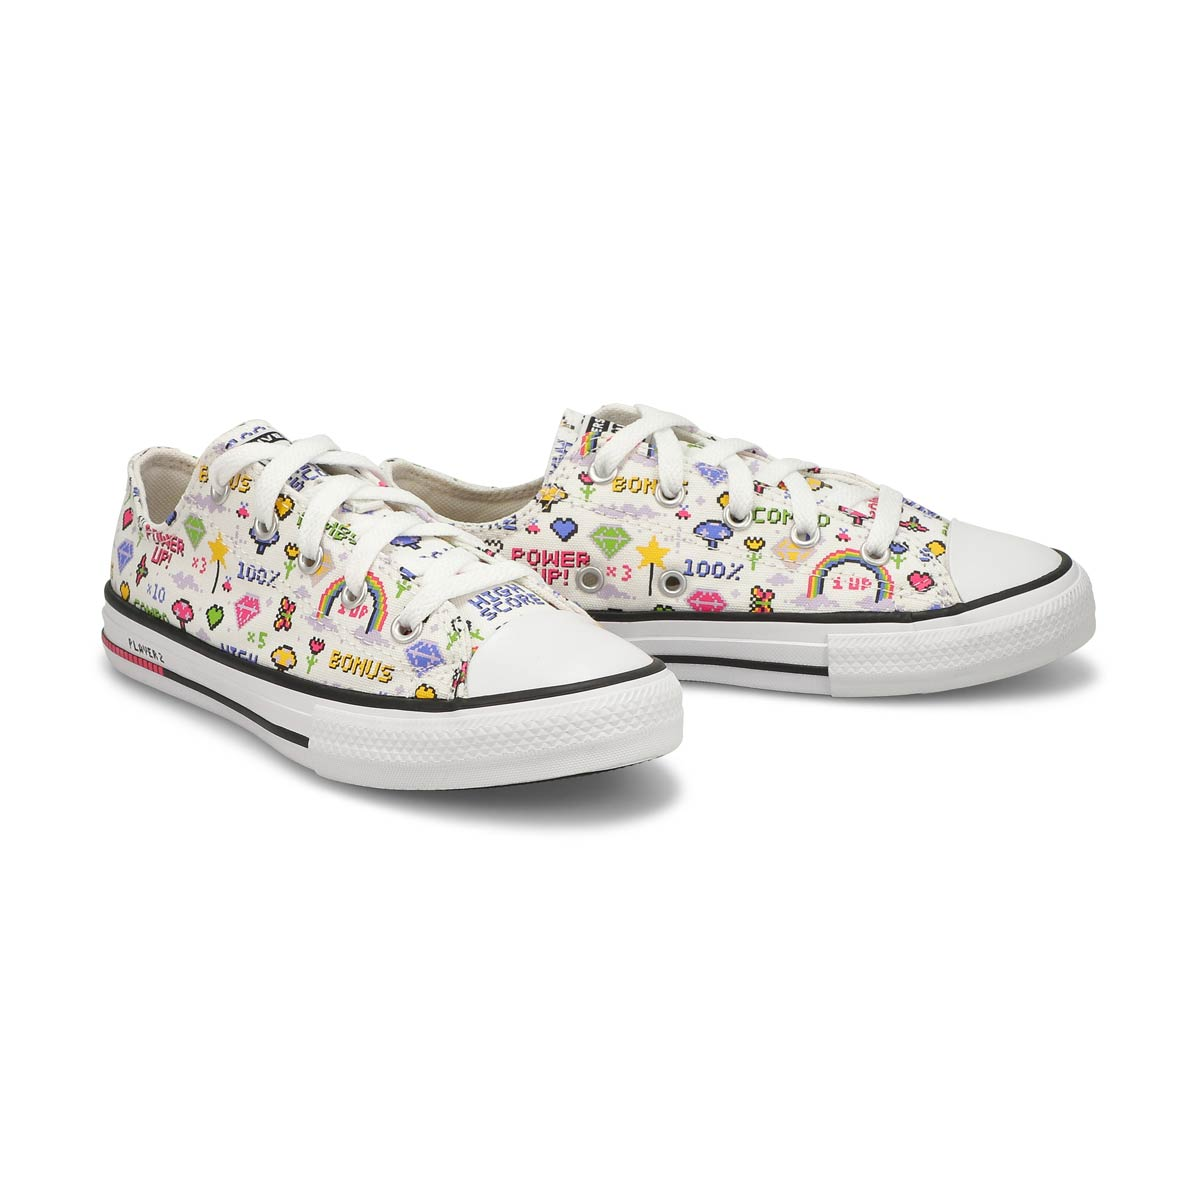 Girls' Chuck Taylor All Star Gamer Sneakers -Whtml